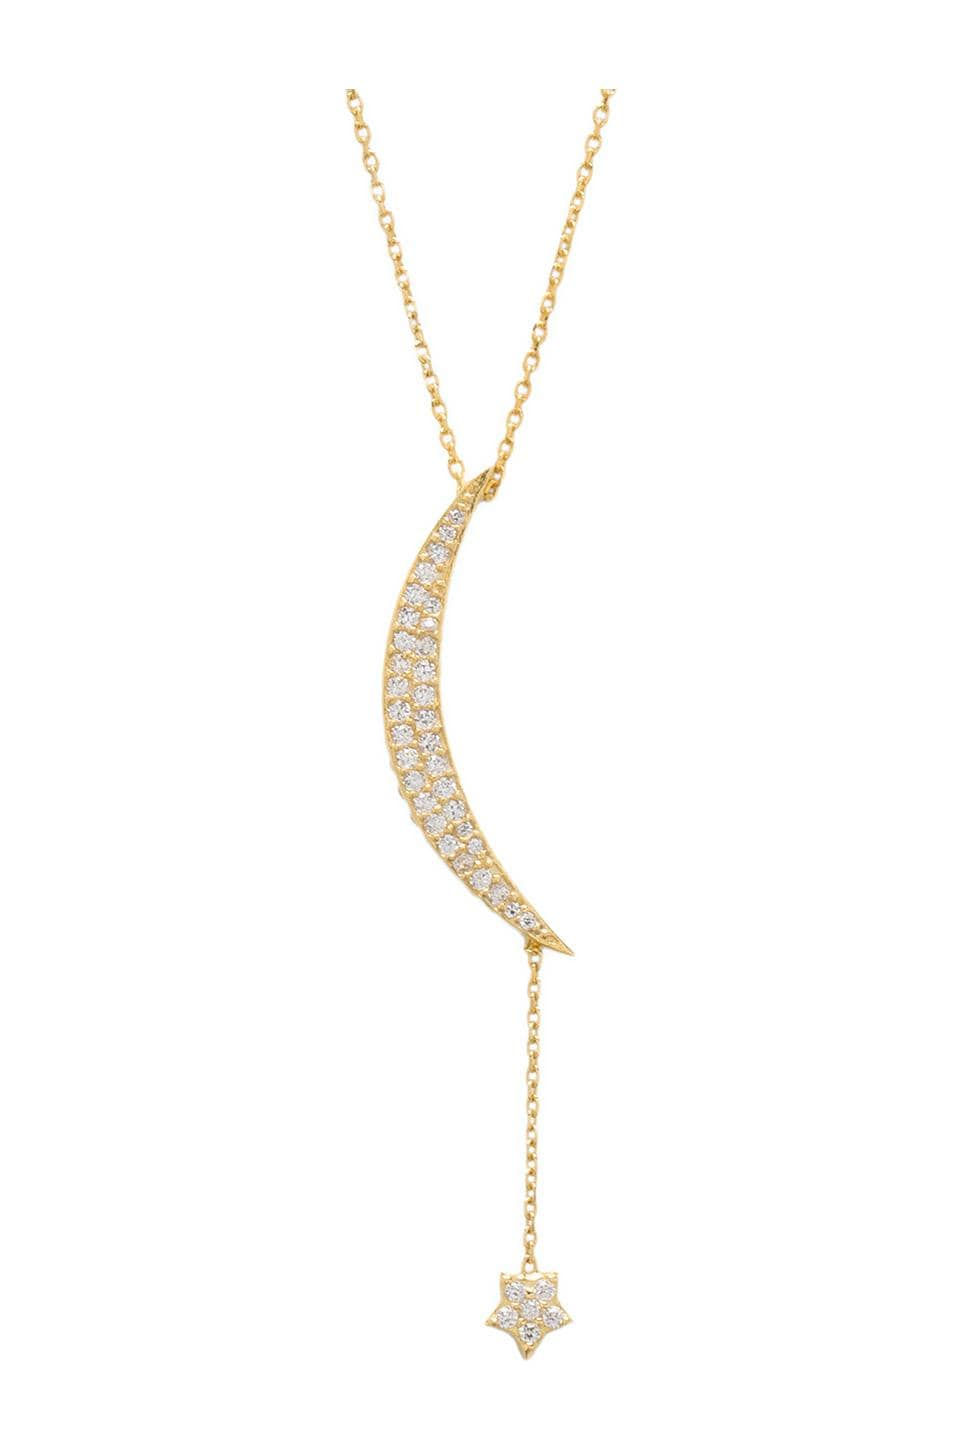 Natalie B Jewelry Natalie B Ottoman Large Moon & Star Necklace in Gold